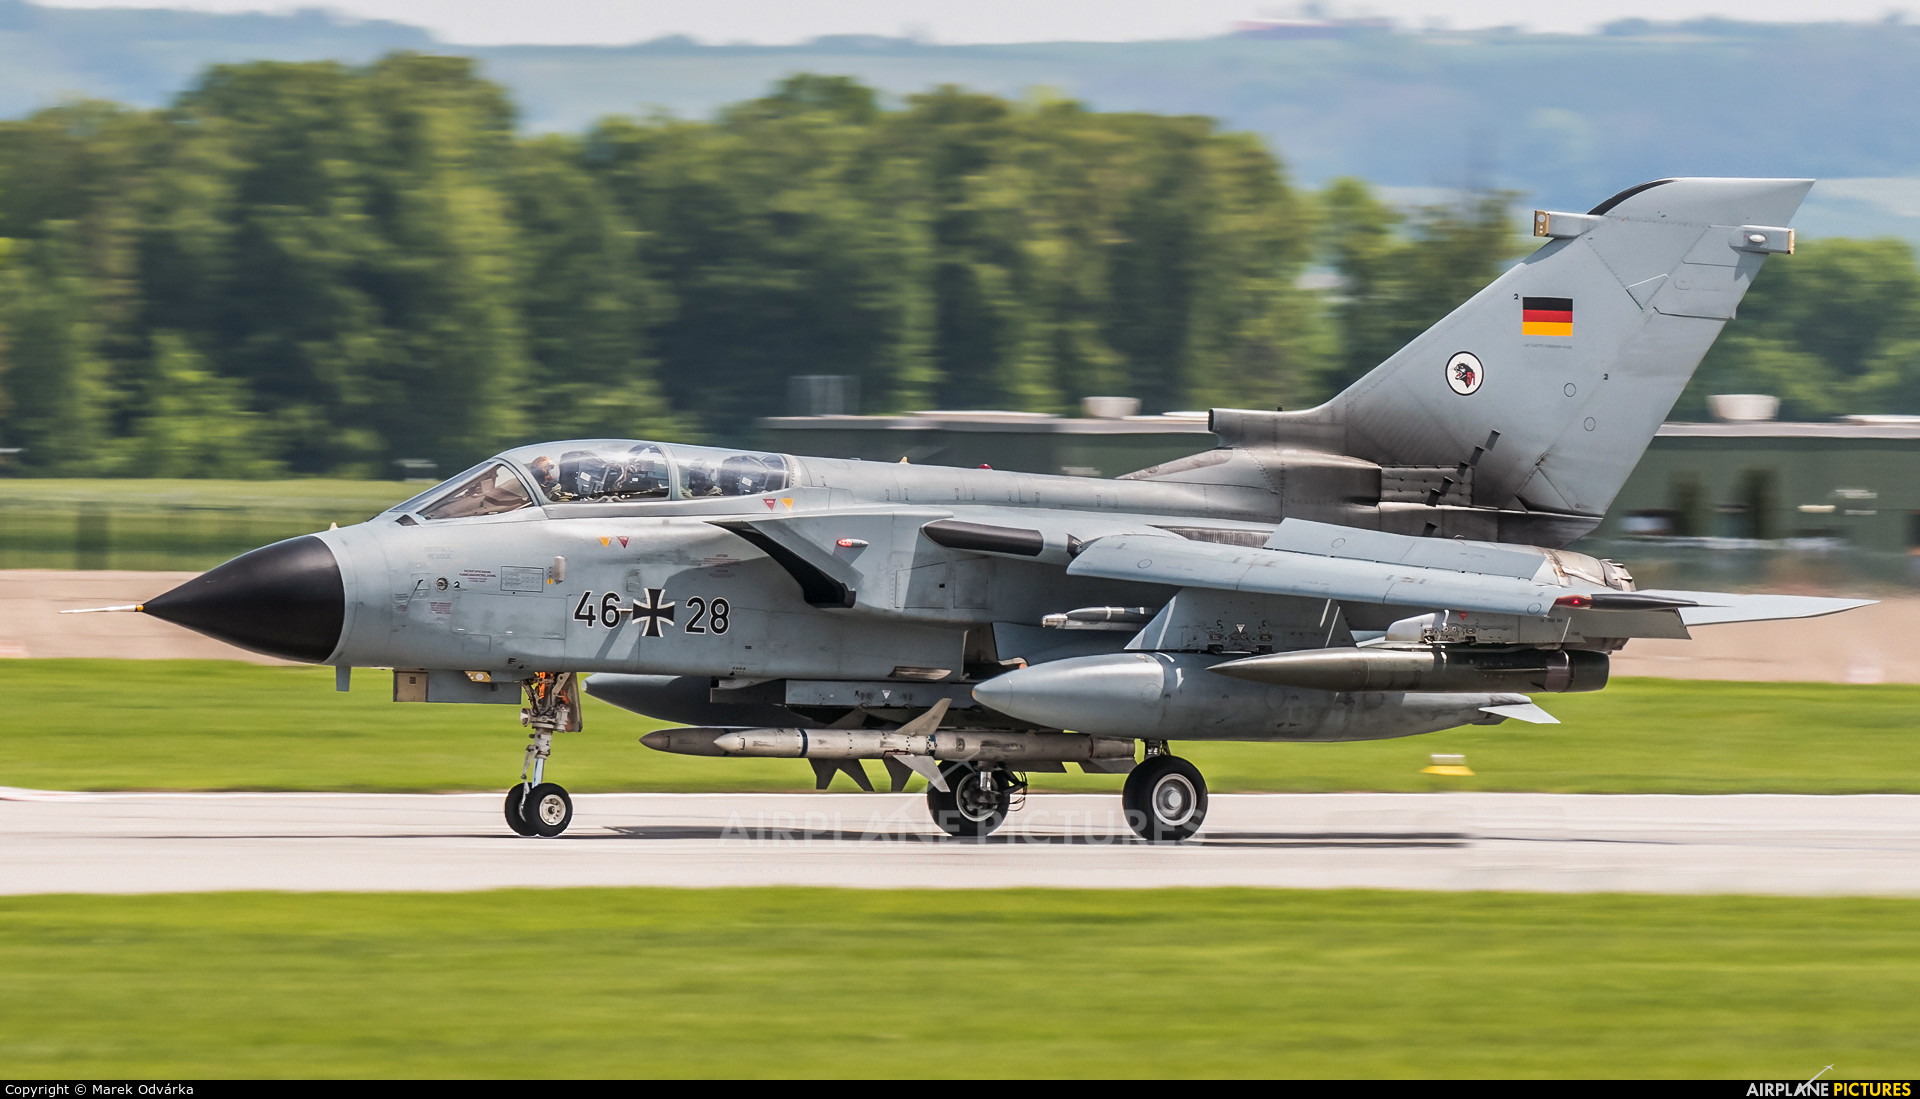 Germany - Air Force 46+28 aircraft at Čáslav